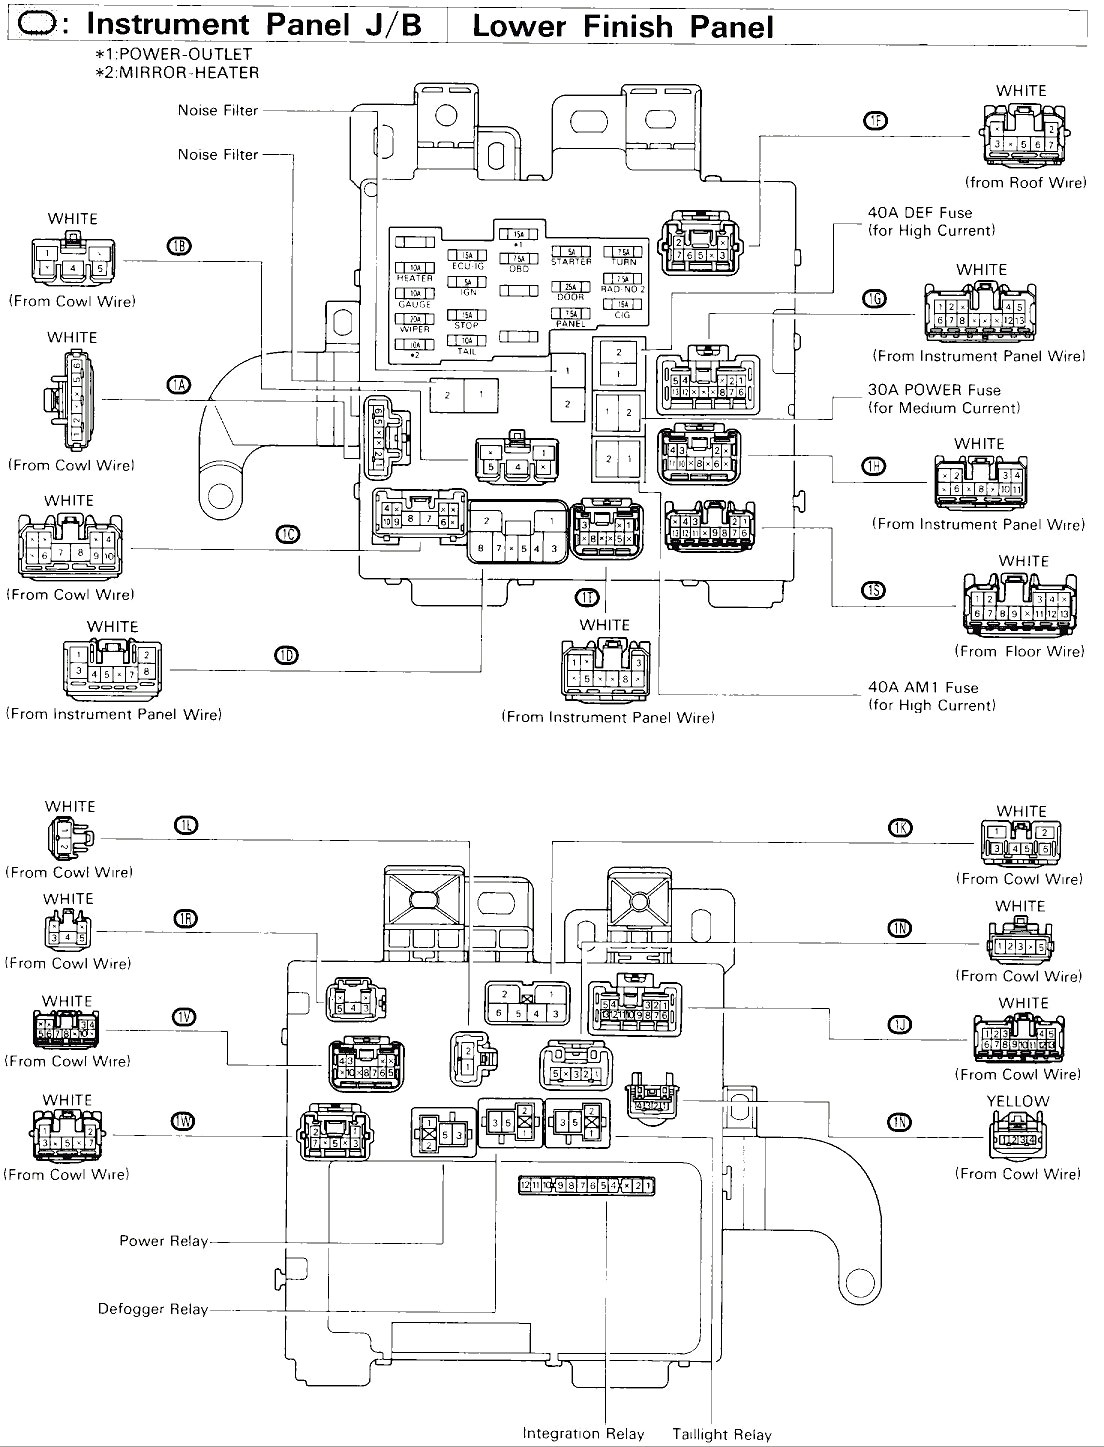 94 toyota camry wiring diagram trusted wiring diagram